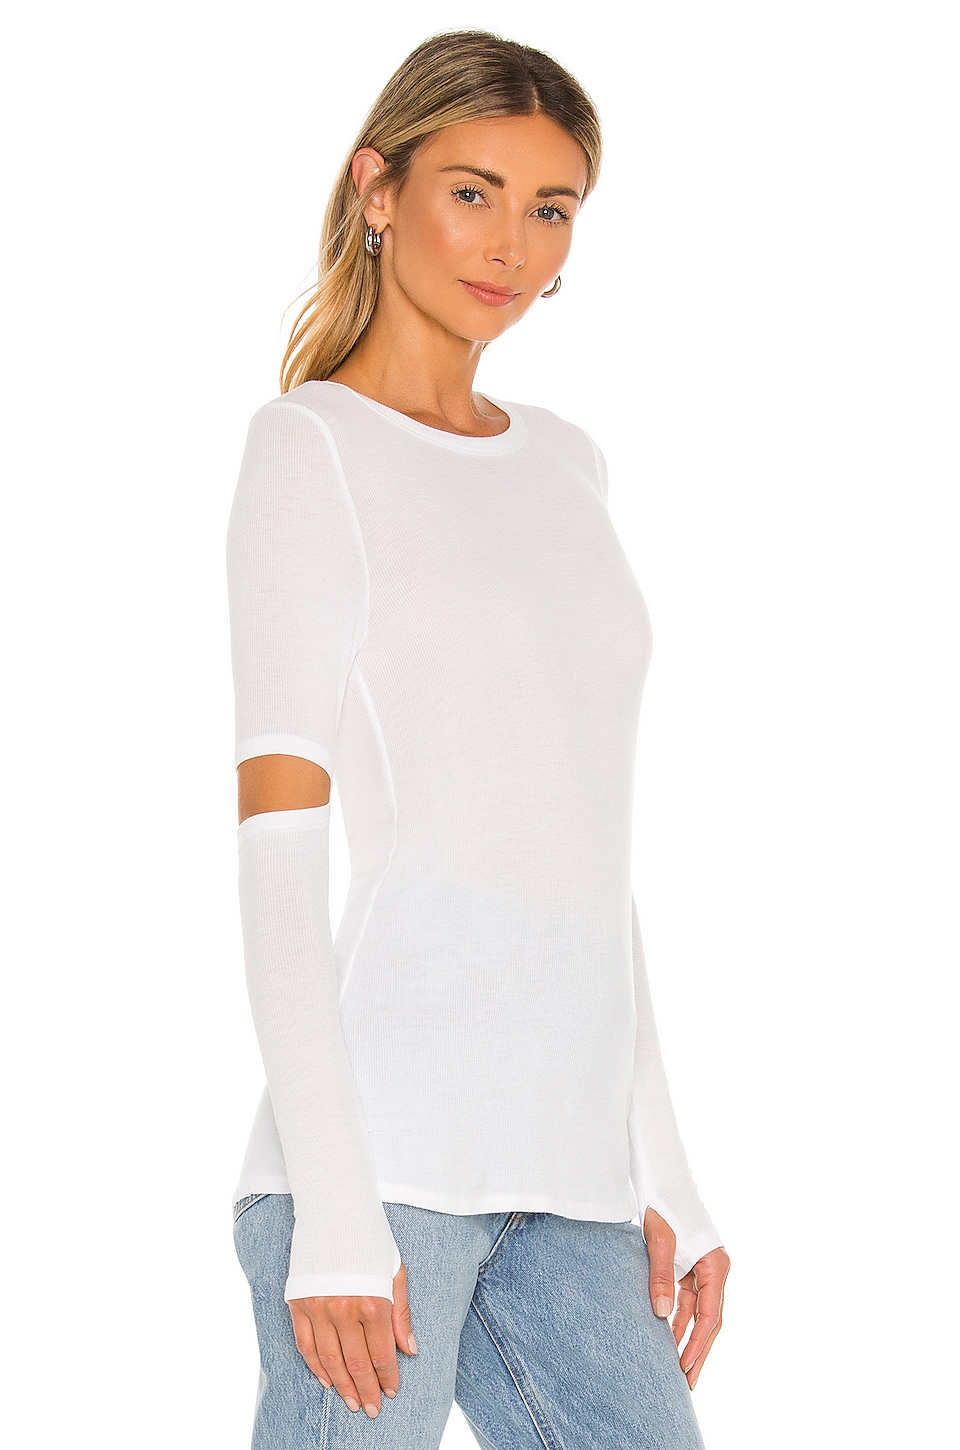 Solomon Elbow Cut Out Tee, view 2, click to view large image.